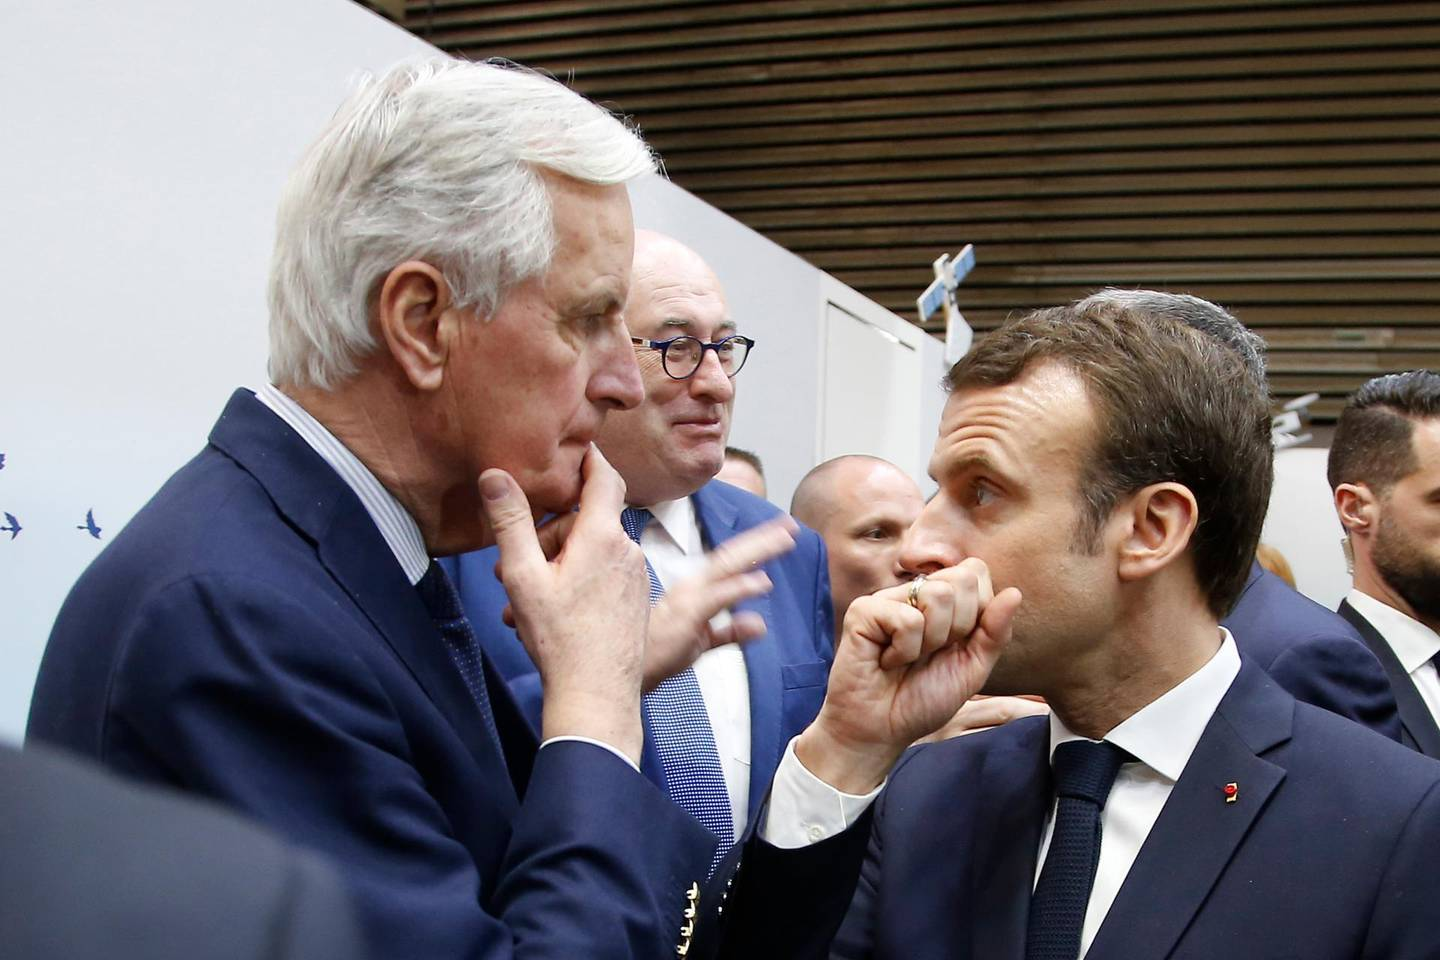 FILE - In this Saturday, Feb. 23, 2019 file photo, French President Emmanuel Macron, right, whispers to European Union chief Brexit negotiator Michel Barnier as he visits the International Agriculture Fair, in Paris, France. He's known throughout most of Europe as Mr. Brexit, but not so well known at home in France. With a new book out this week, and interviews in national media, Michel Barnier is trying to raise his profile ahead of next April's presidential election. (AP Photo/Michel Euler, Pool, File)